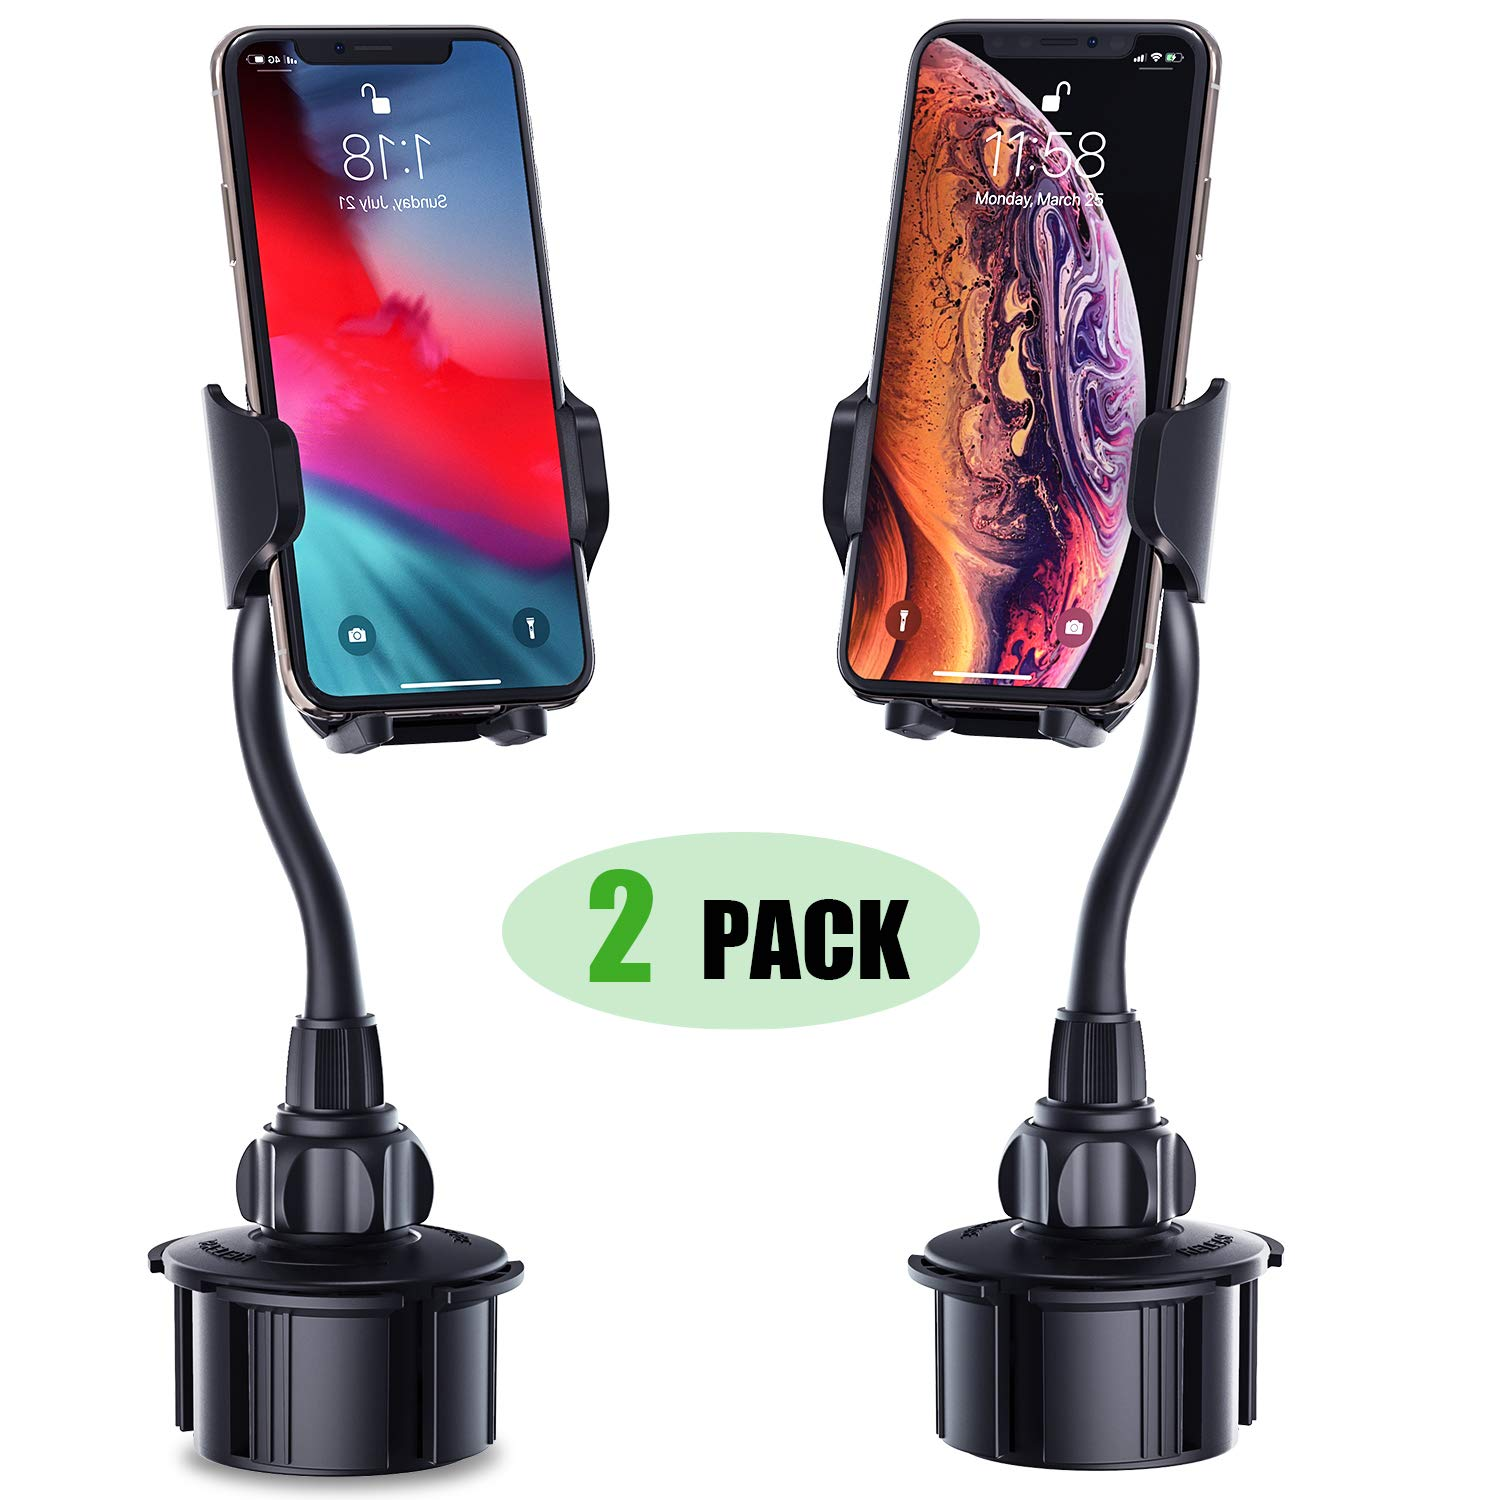 Cell Phone Holder for Car, [2 Pack] Adjustable Gooseneck Car Phone Mount Universal Cup Phone Holder Compatible with iPhone Xs XR X 8 8+ 7 7+ SE 6s 6+ 6,Galaxy S10 S9 S8 S7 S6 S5 S4 Note 10 9 8 LG etc by Kinhan